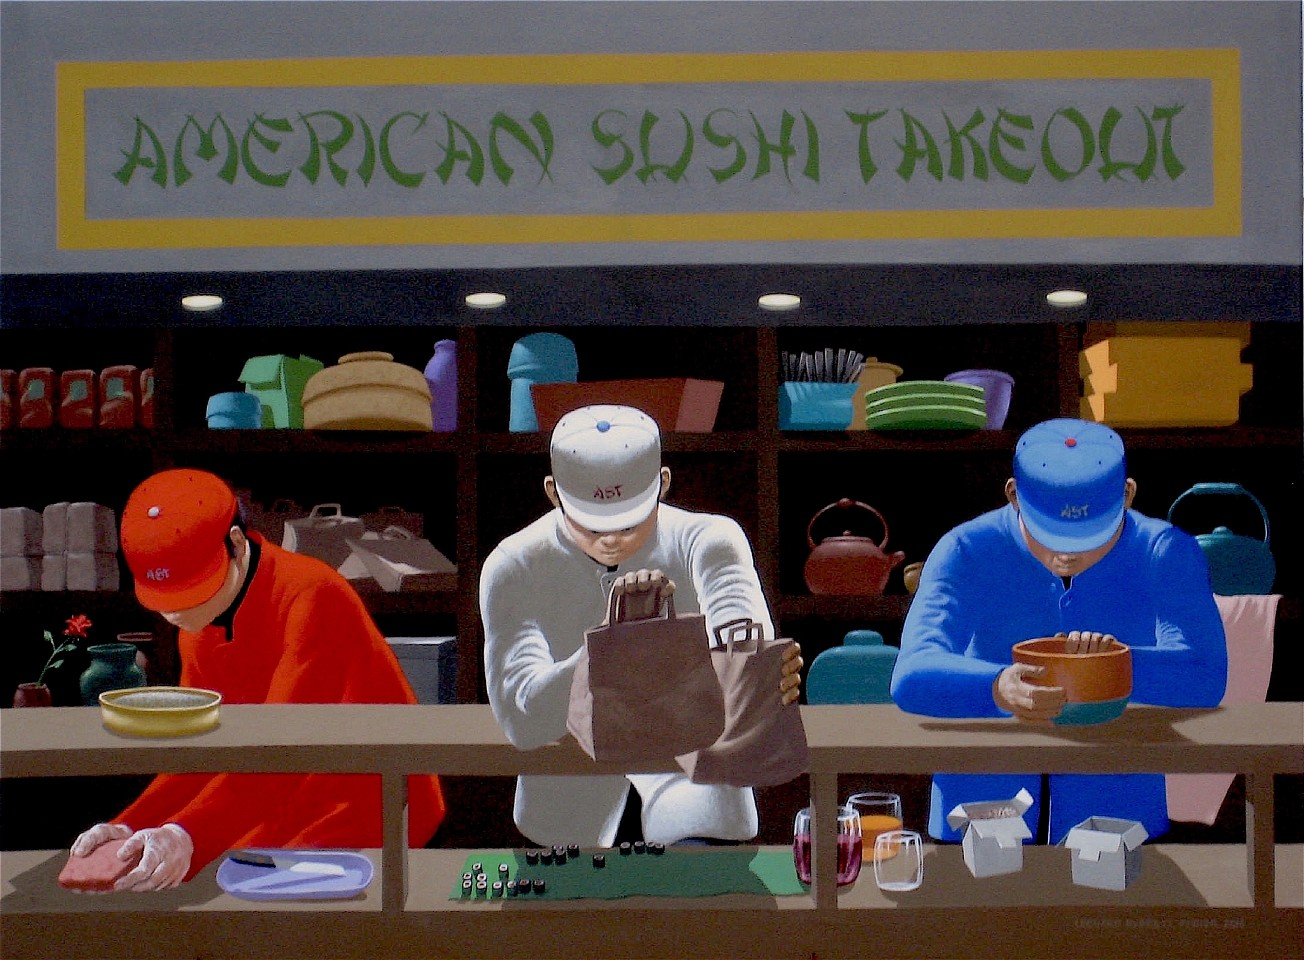 Leonard Everett Fisher ,   American Sushi Take Out  ,  2019     acrylic on canvas ,  36 x 48 in. (91.4 x 121.9 cm)     LES190601